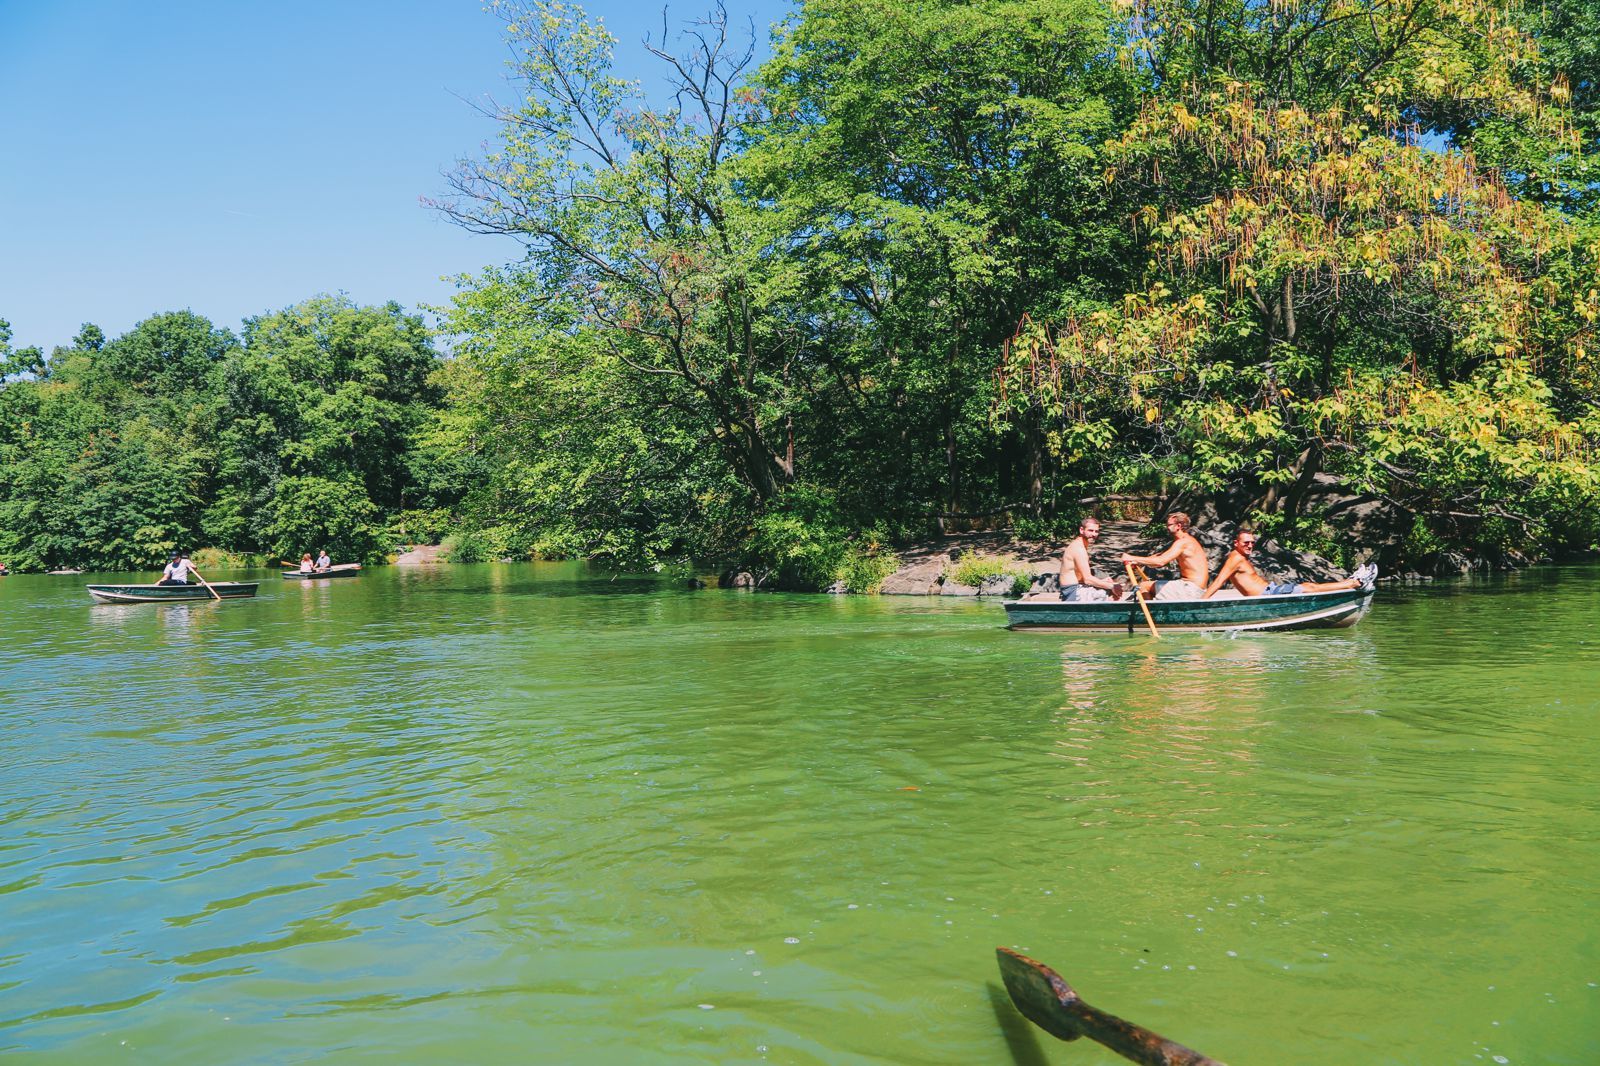 Boating at the Loeb Boathouse in Central Park, New York City (10)